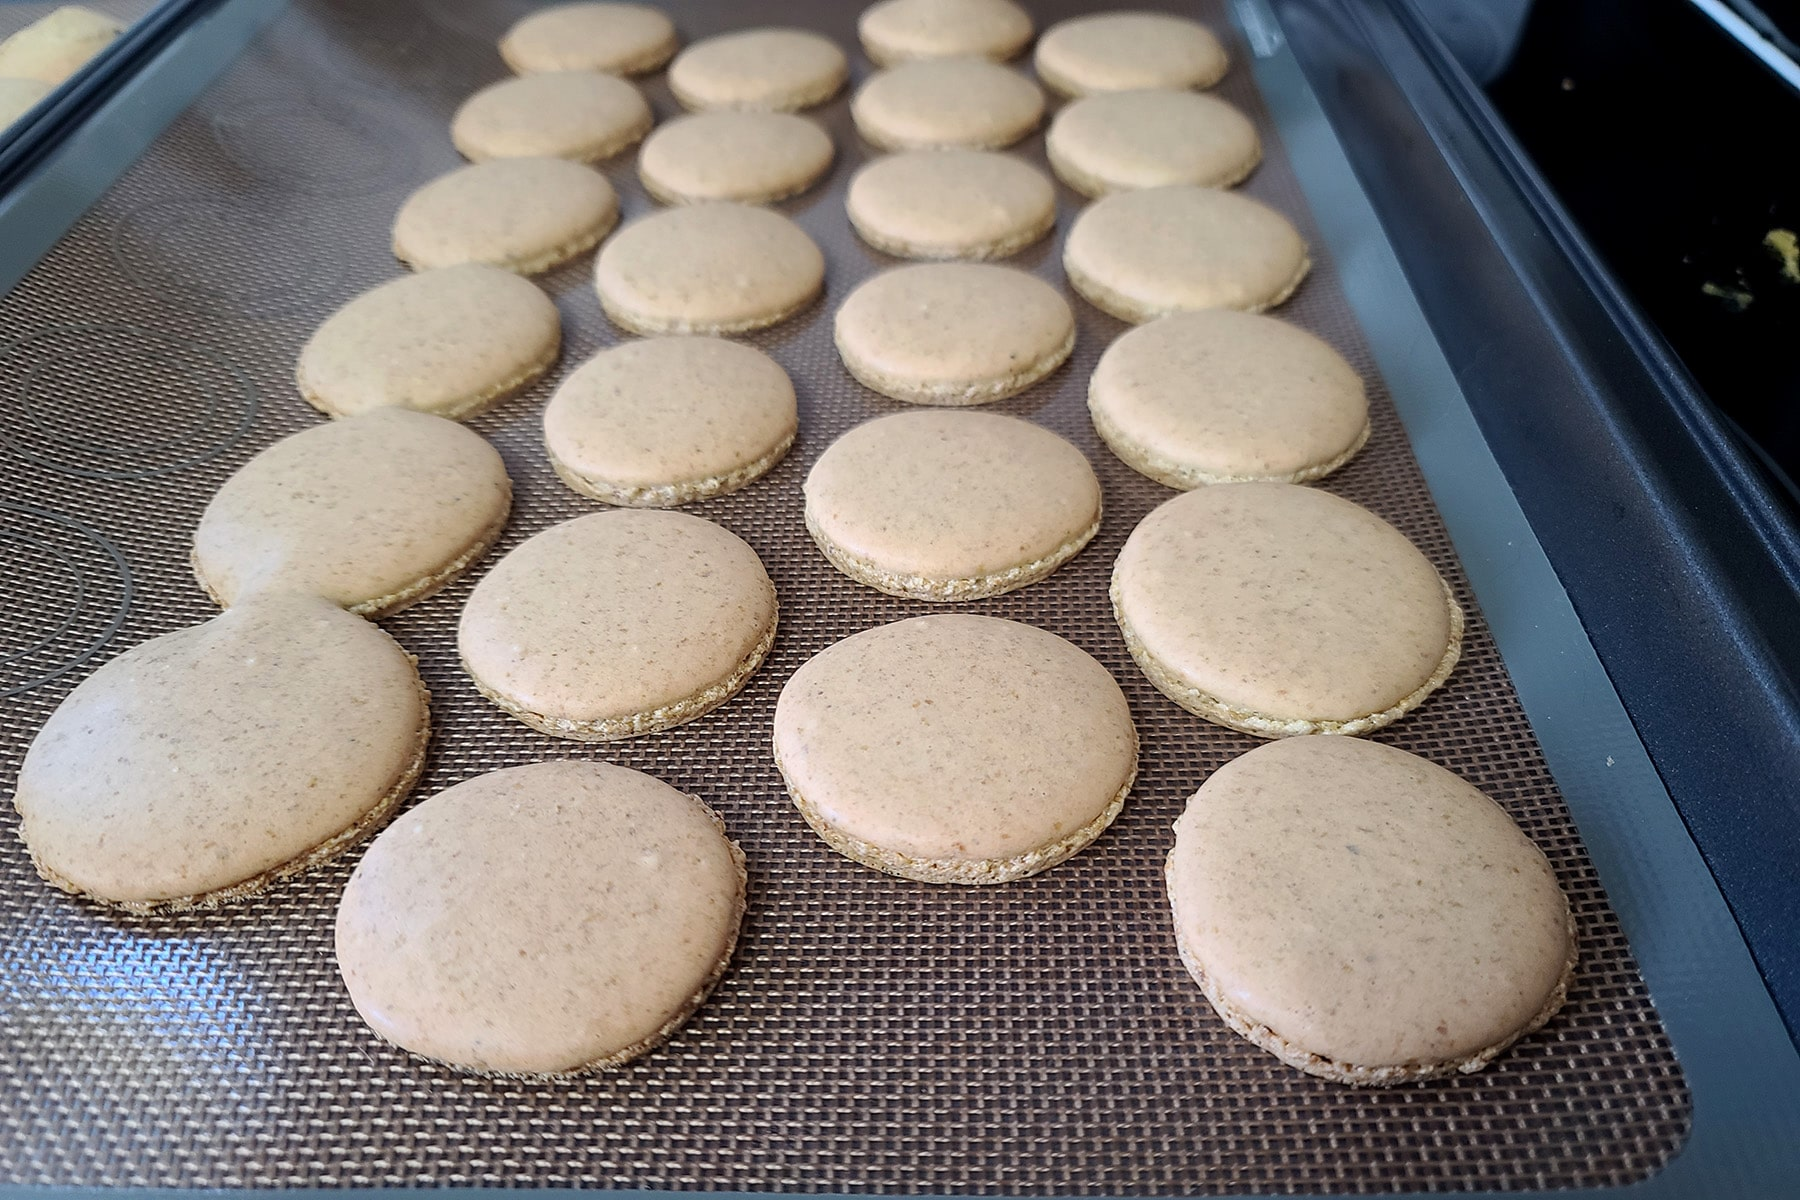 A pan of perfect looking macarons.